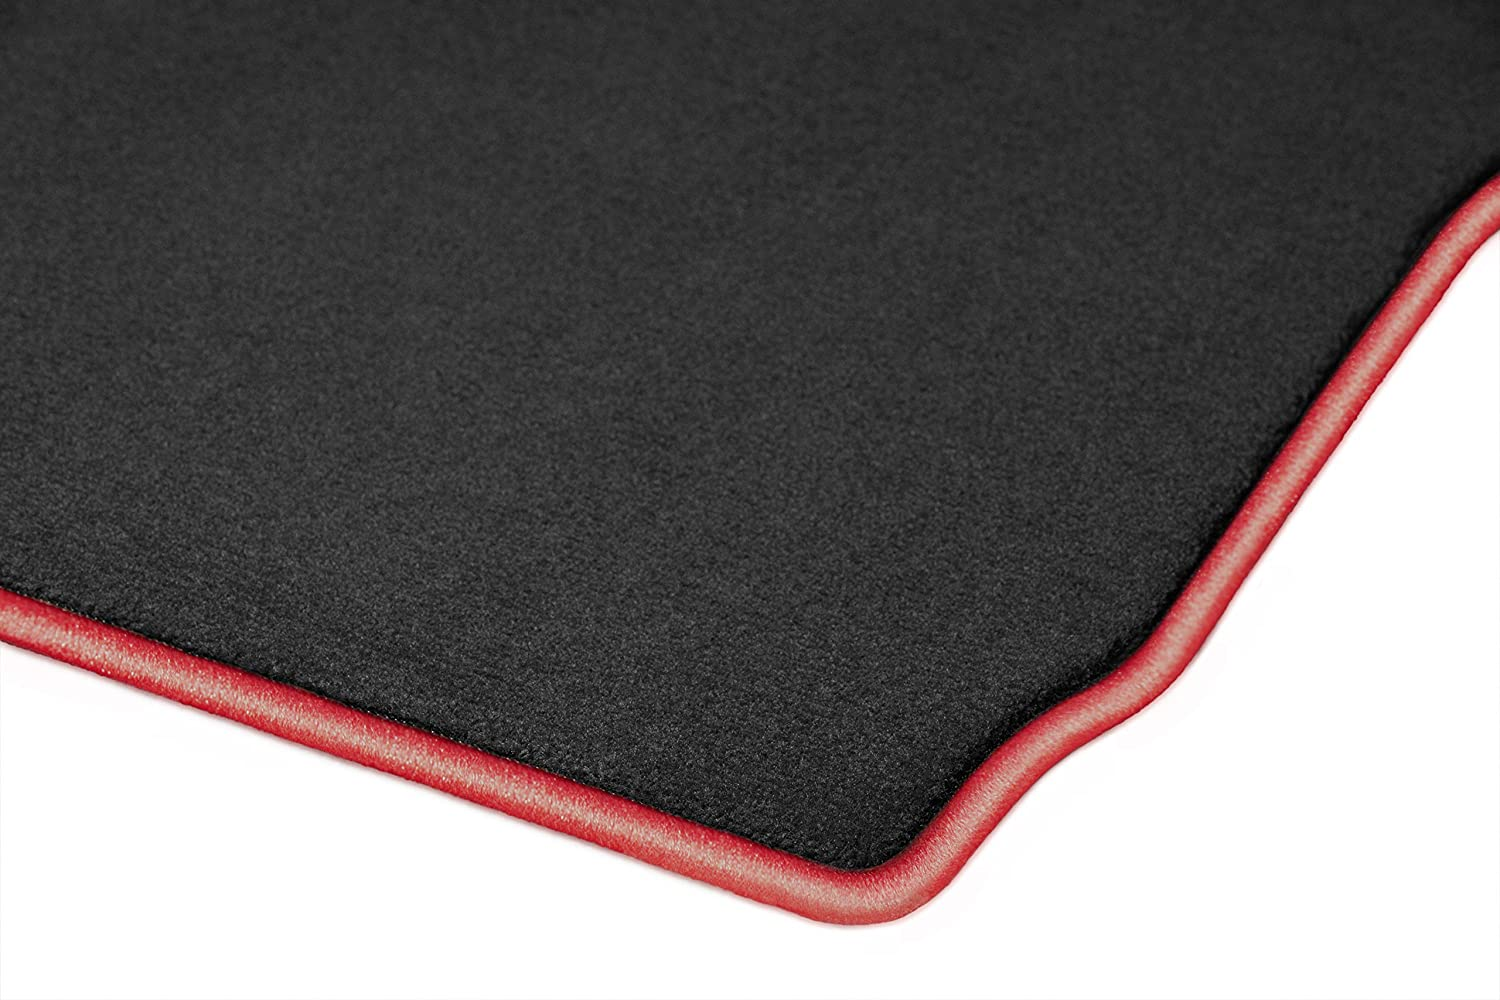 GGBAILEY D3123A-F1A-BLK/_BR Custom Fit Car Mats for 2002 2004 2006 Acura RSX Black with Red Edging Driver /& Passenger Floor 2005 2003